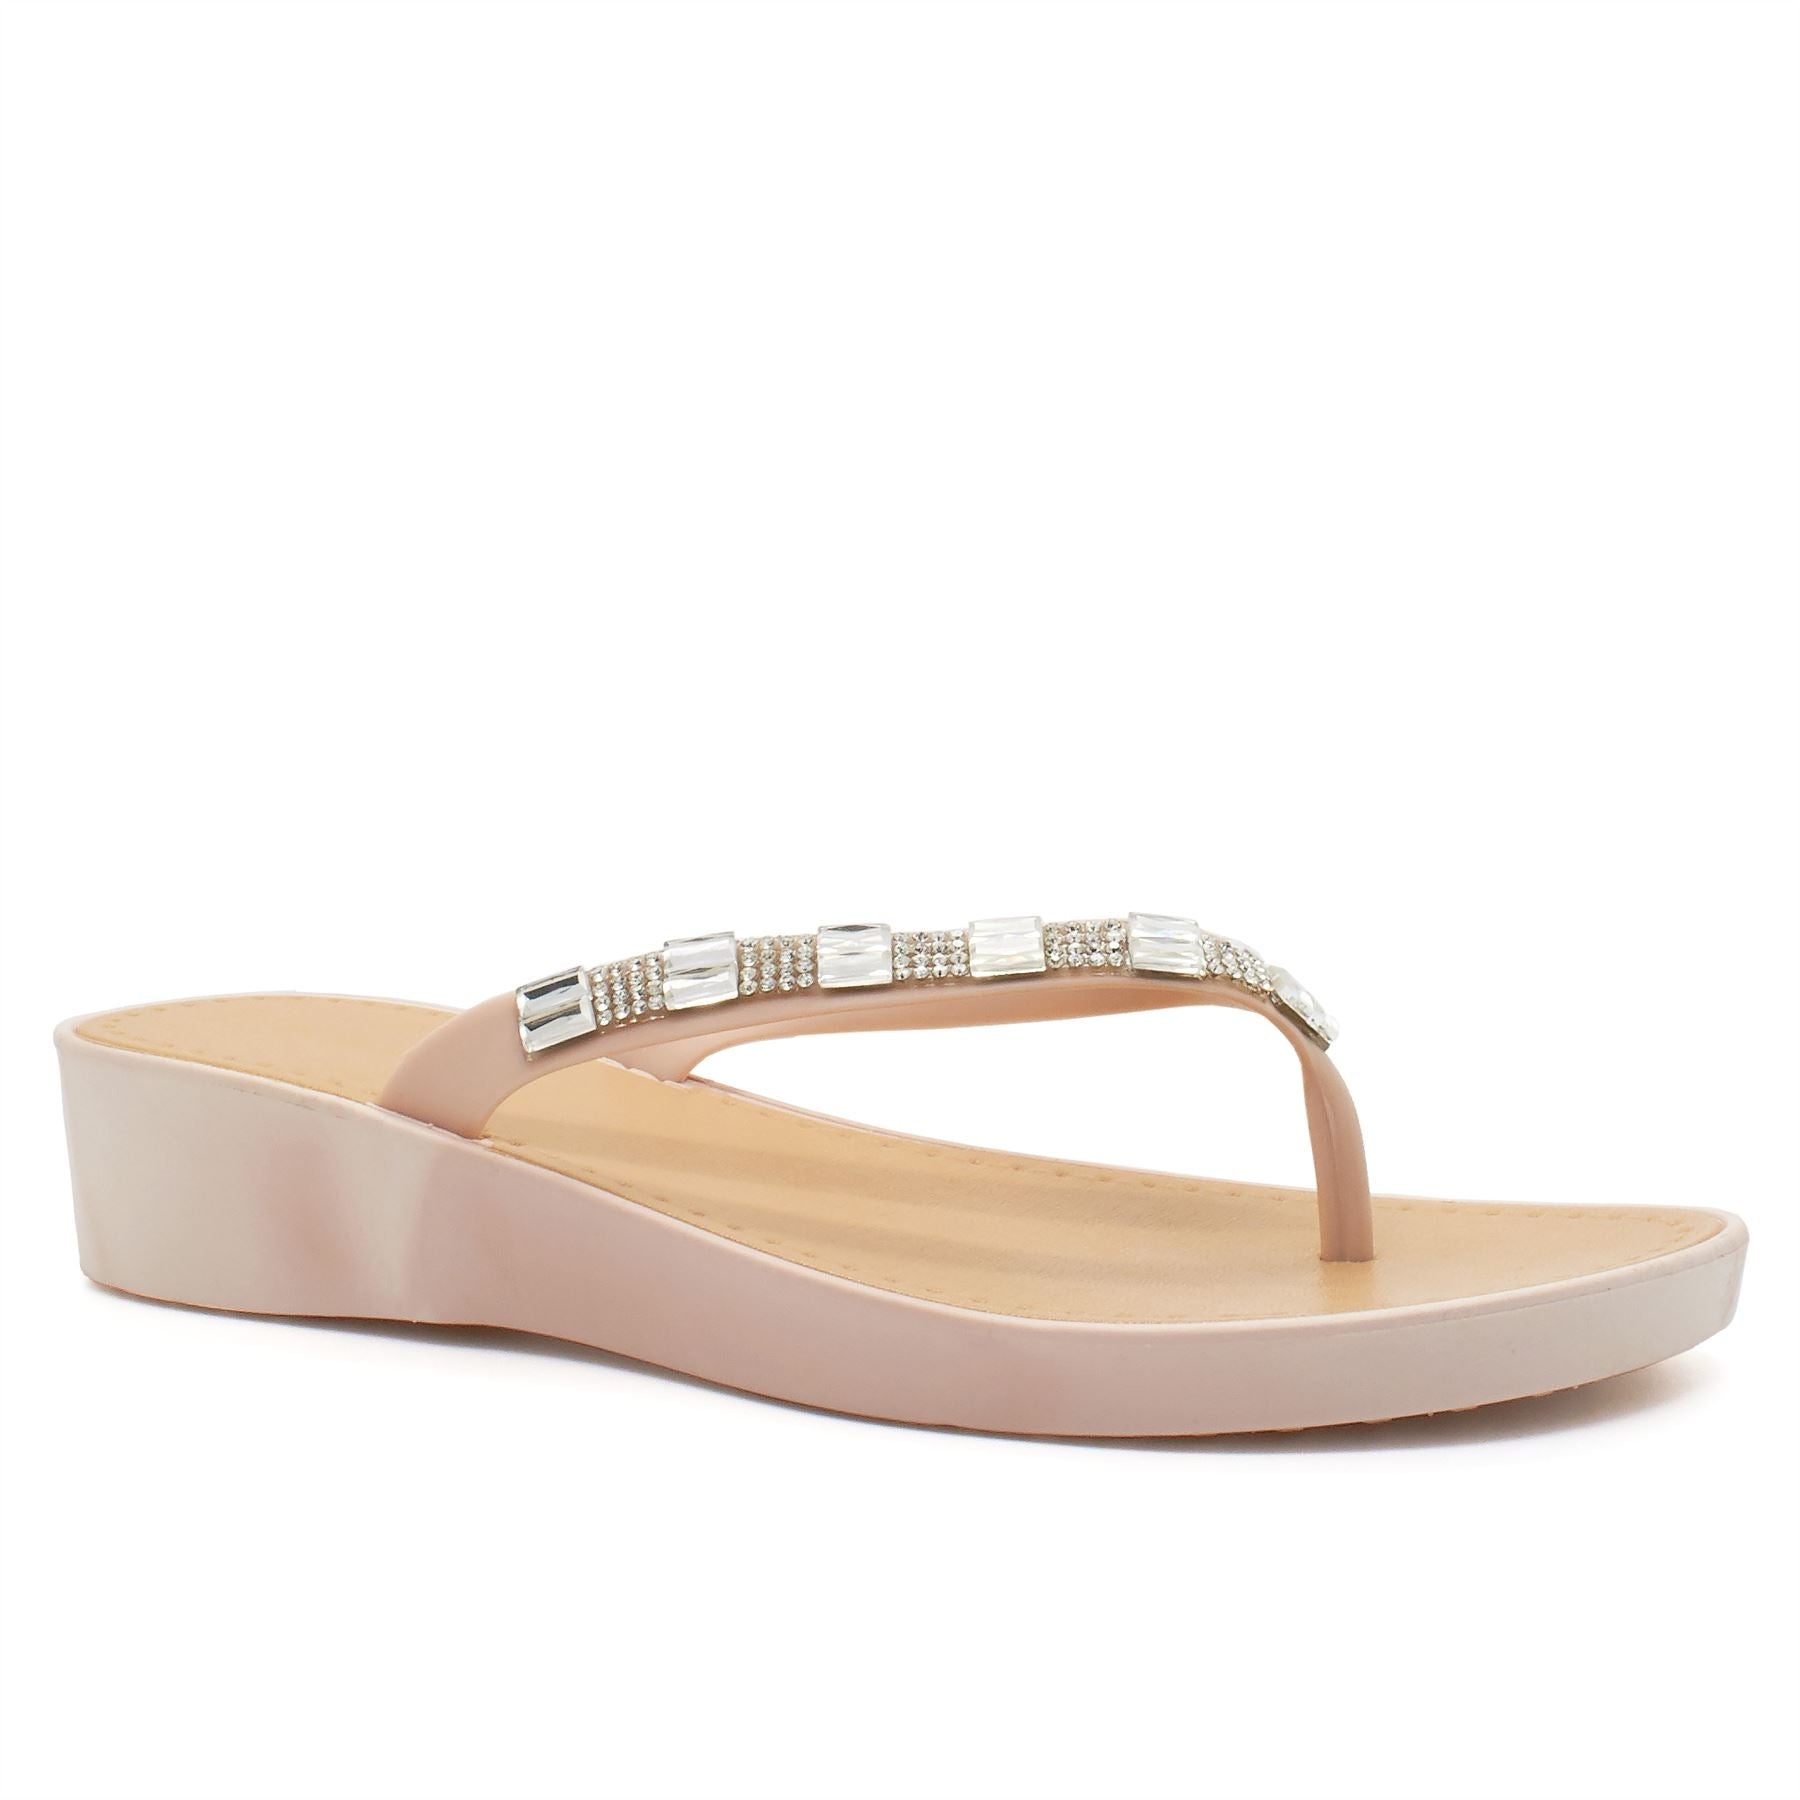 Nude Diamante Wedge Heeled Flip Flops